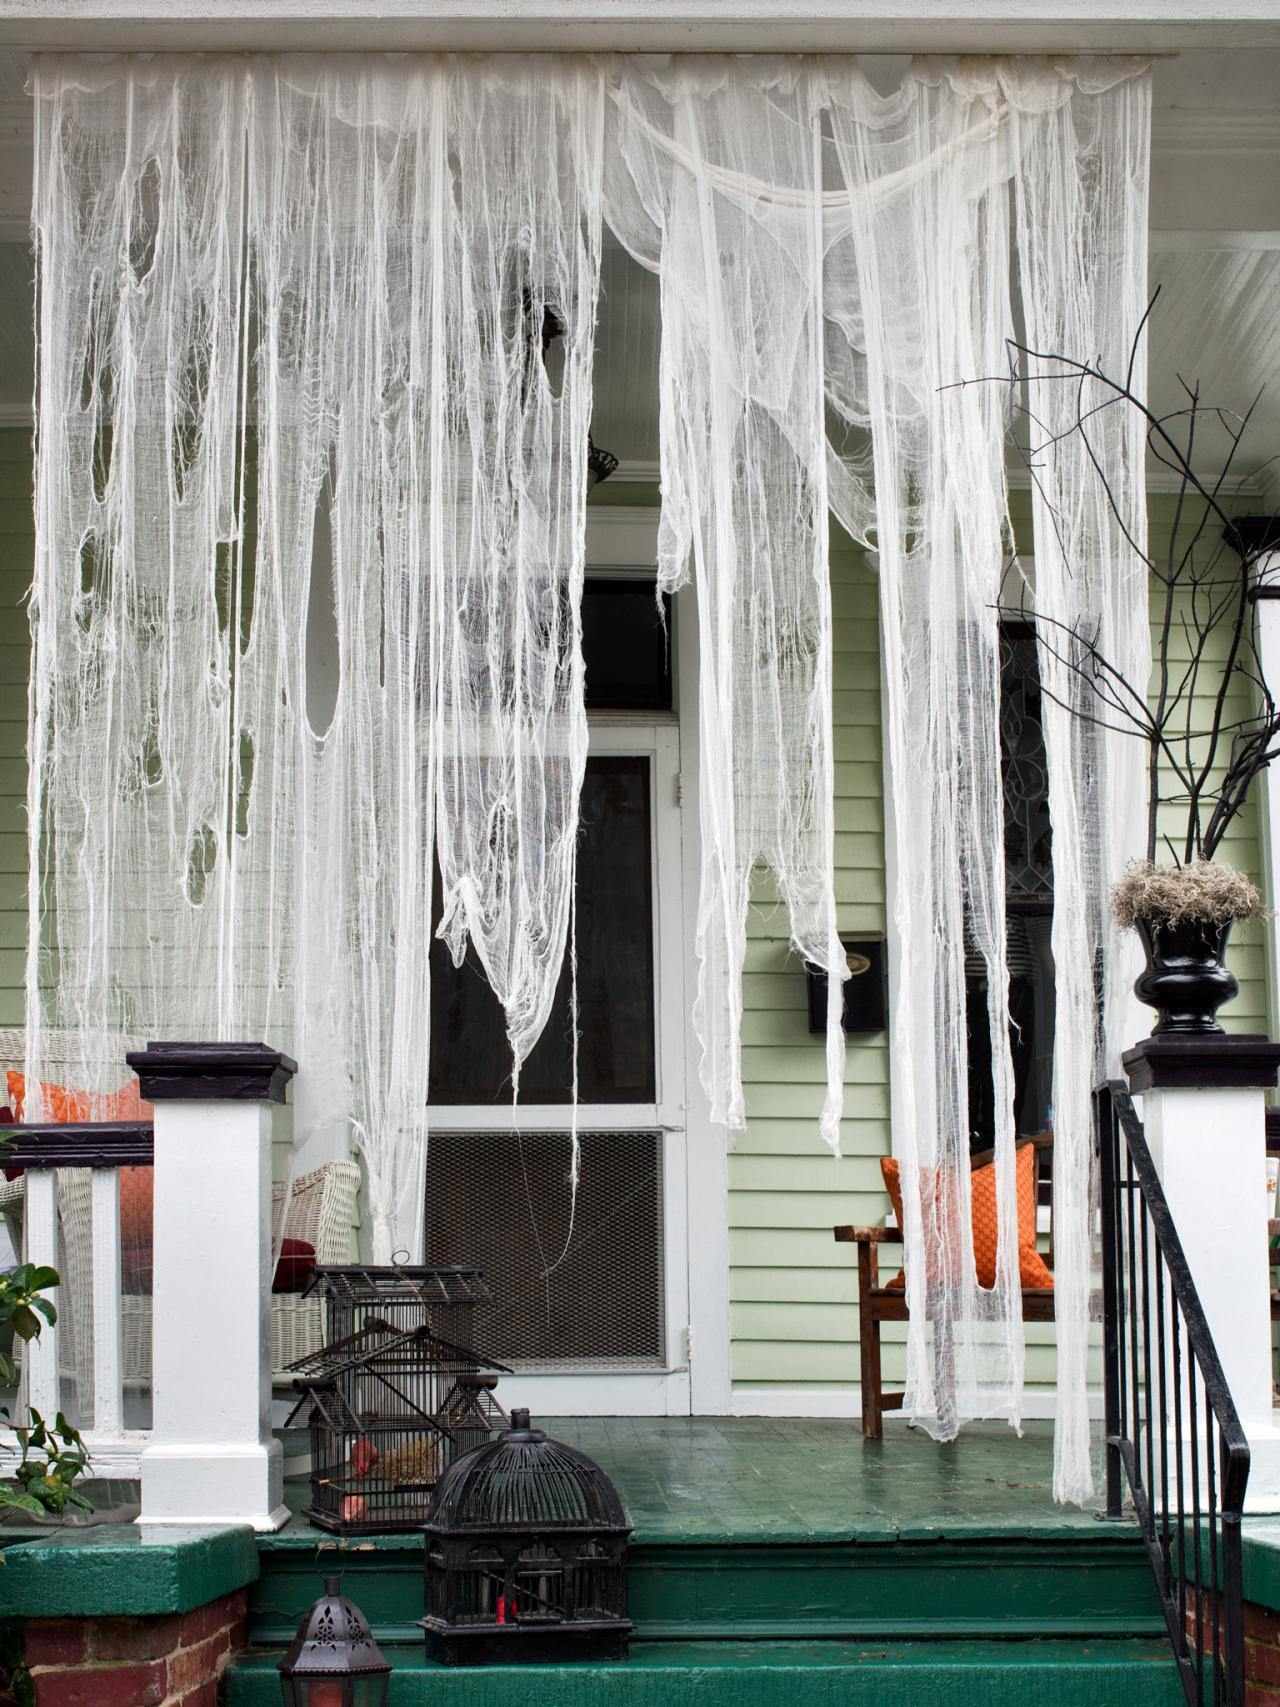 Recycle Tattered Draperies for Halloween Decoration Ideas